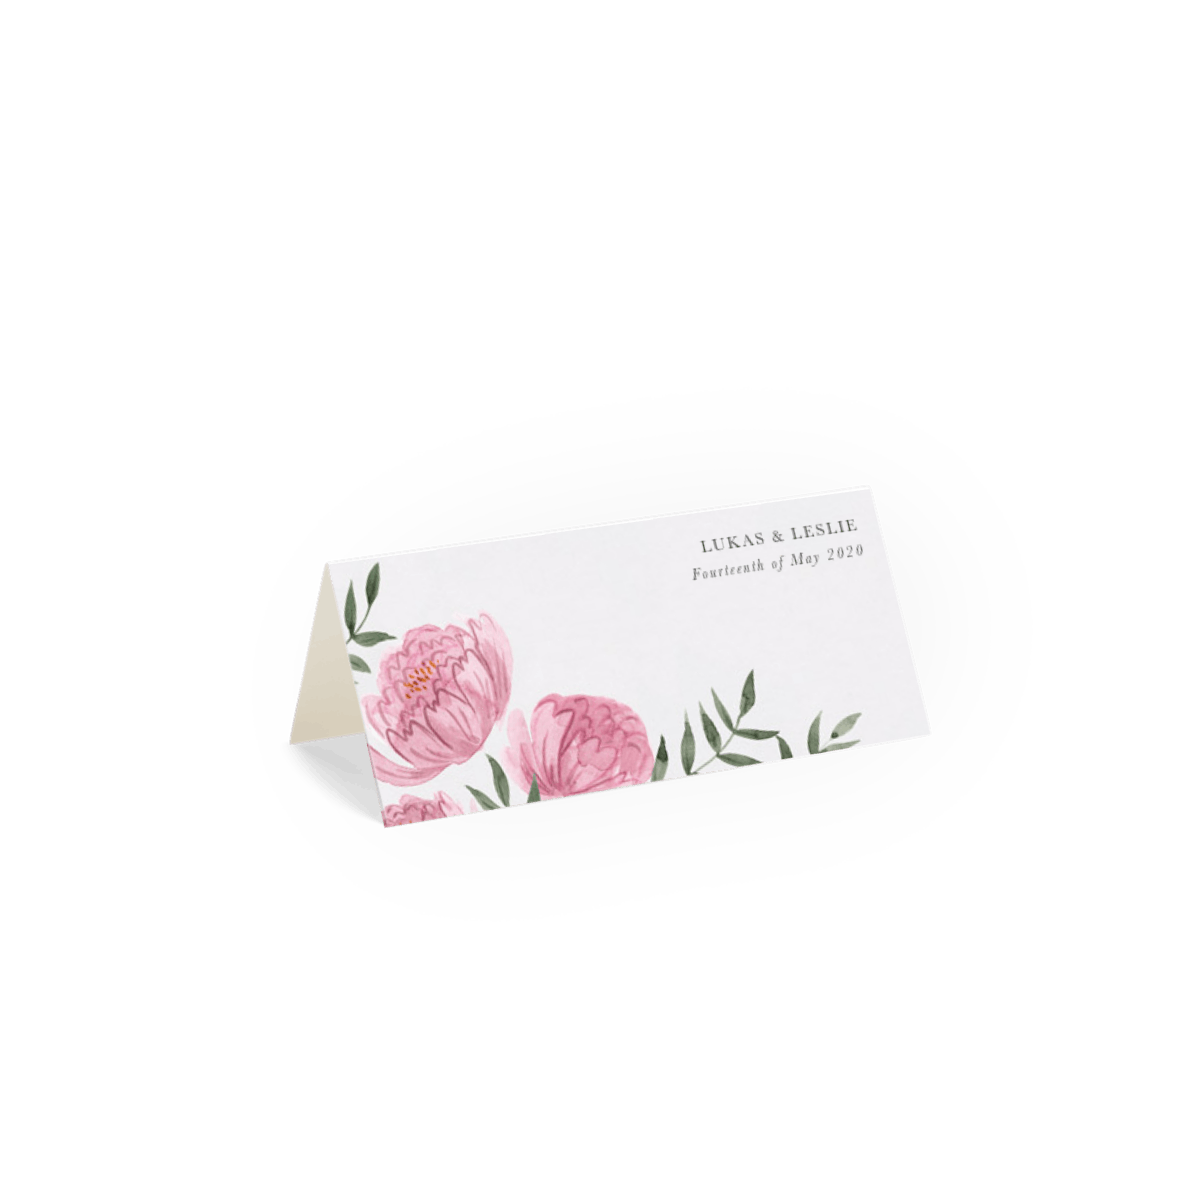 Https%3a%2f%2fwww.papier.com%2fproduct image%2f69726%2f15%2fdusky peonies 16484 back 1553091781.png?ixlib=rb 1.1